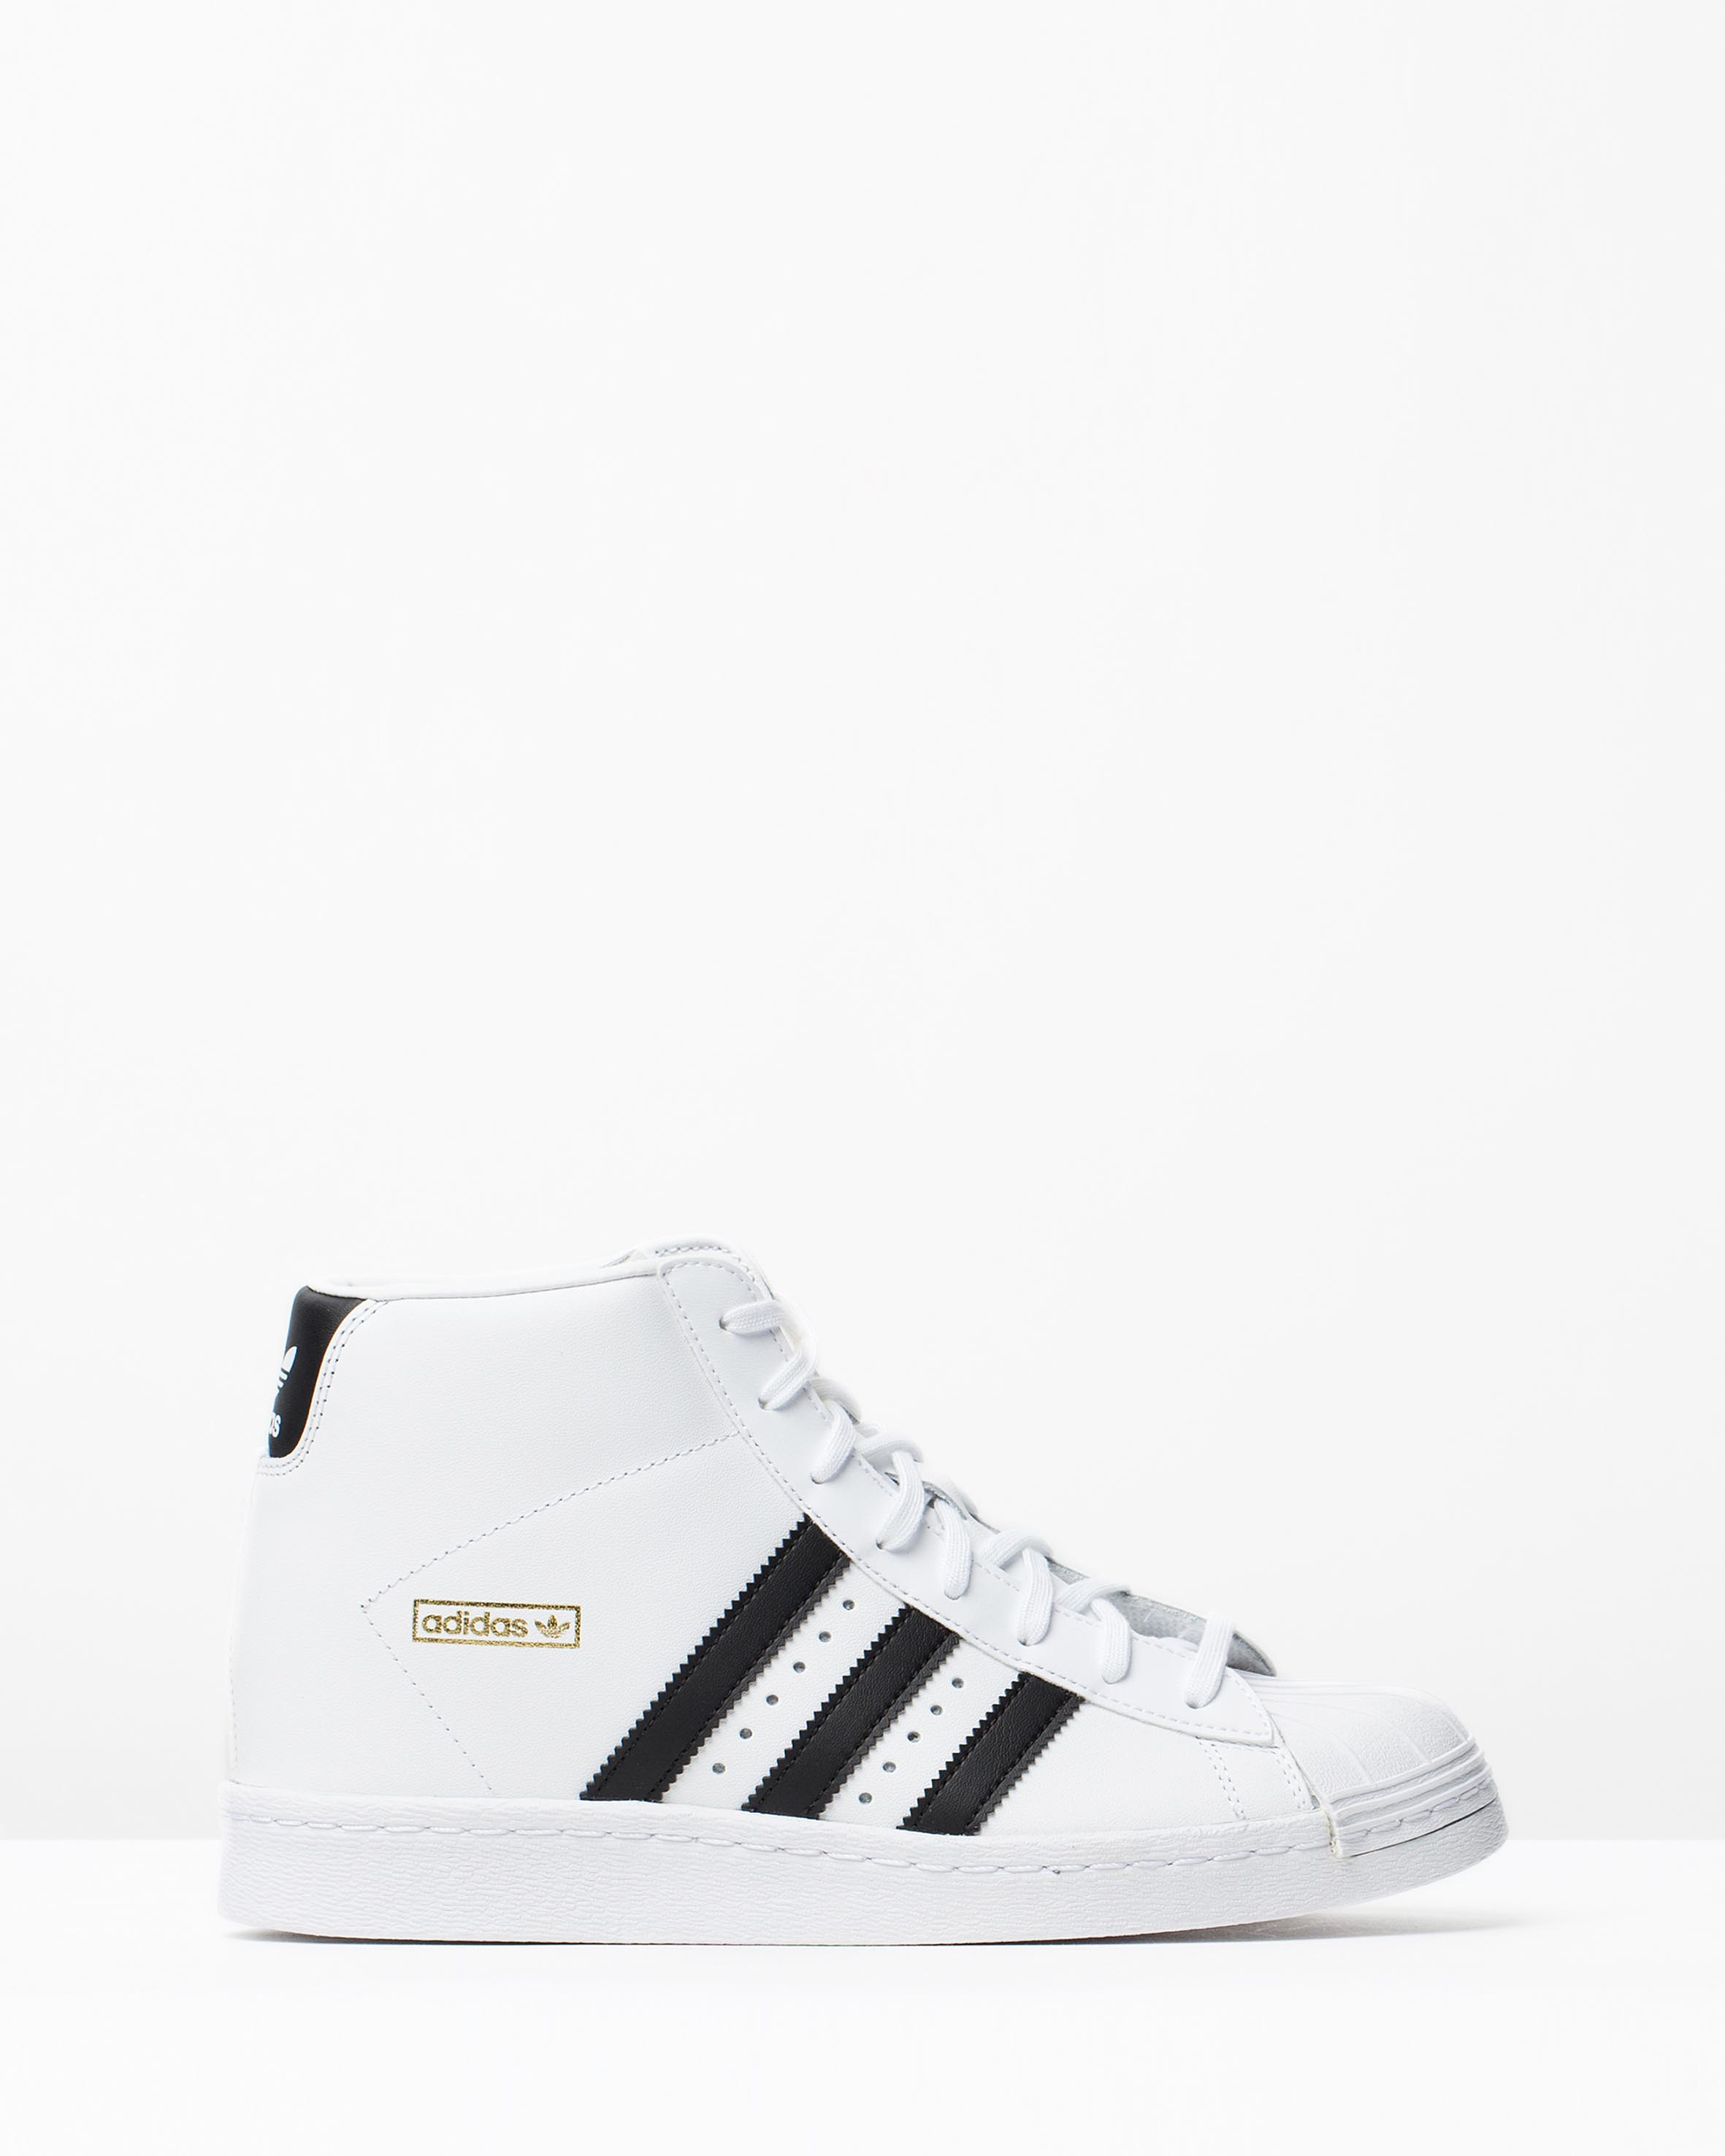 ADIDAS ORIGINALS SUPERSTAR UP DONNA SCARPE S81377